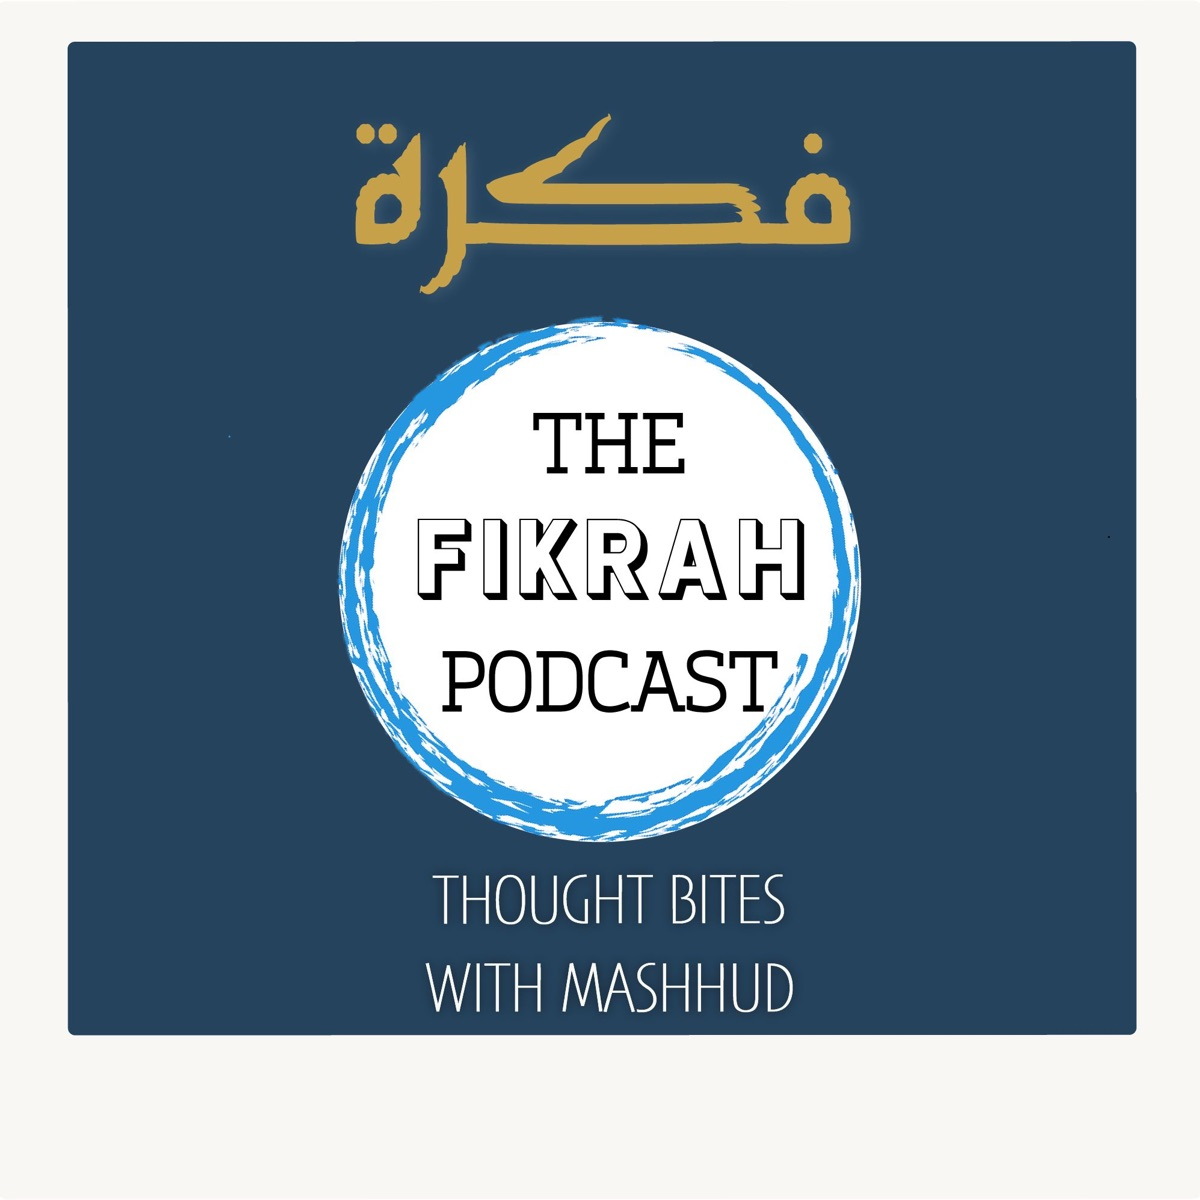 The Fikrah Podcast